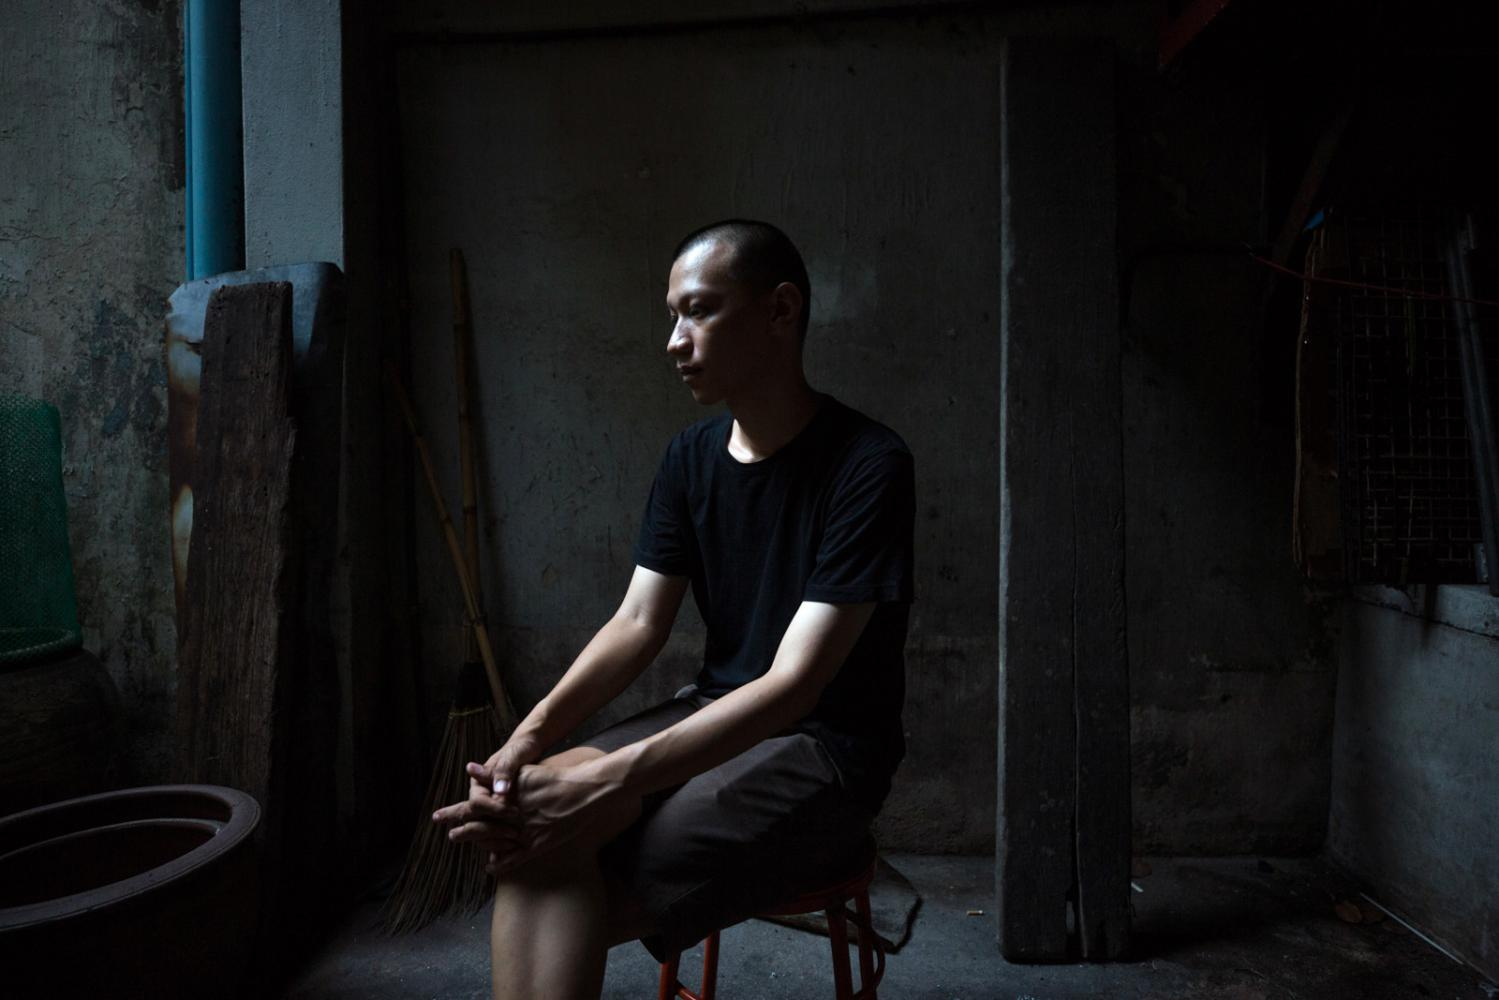 Jaturang Wongjiragorn, 28, sits in the dark alleyway outside his house in Chinatown, Bangkok. In September 2019, 4 members of his family caught dengue fever of which his father died from the disease after several misdiagnoses. Bangkok, Thailand - October 2019